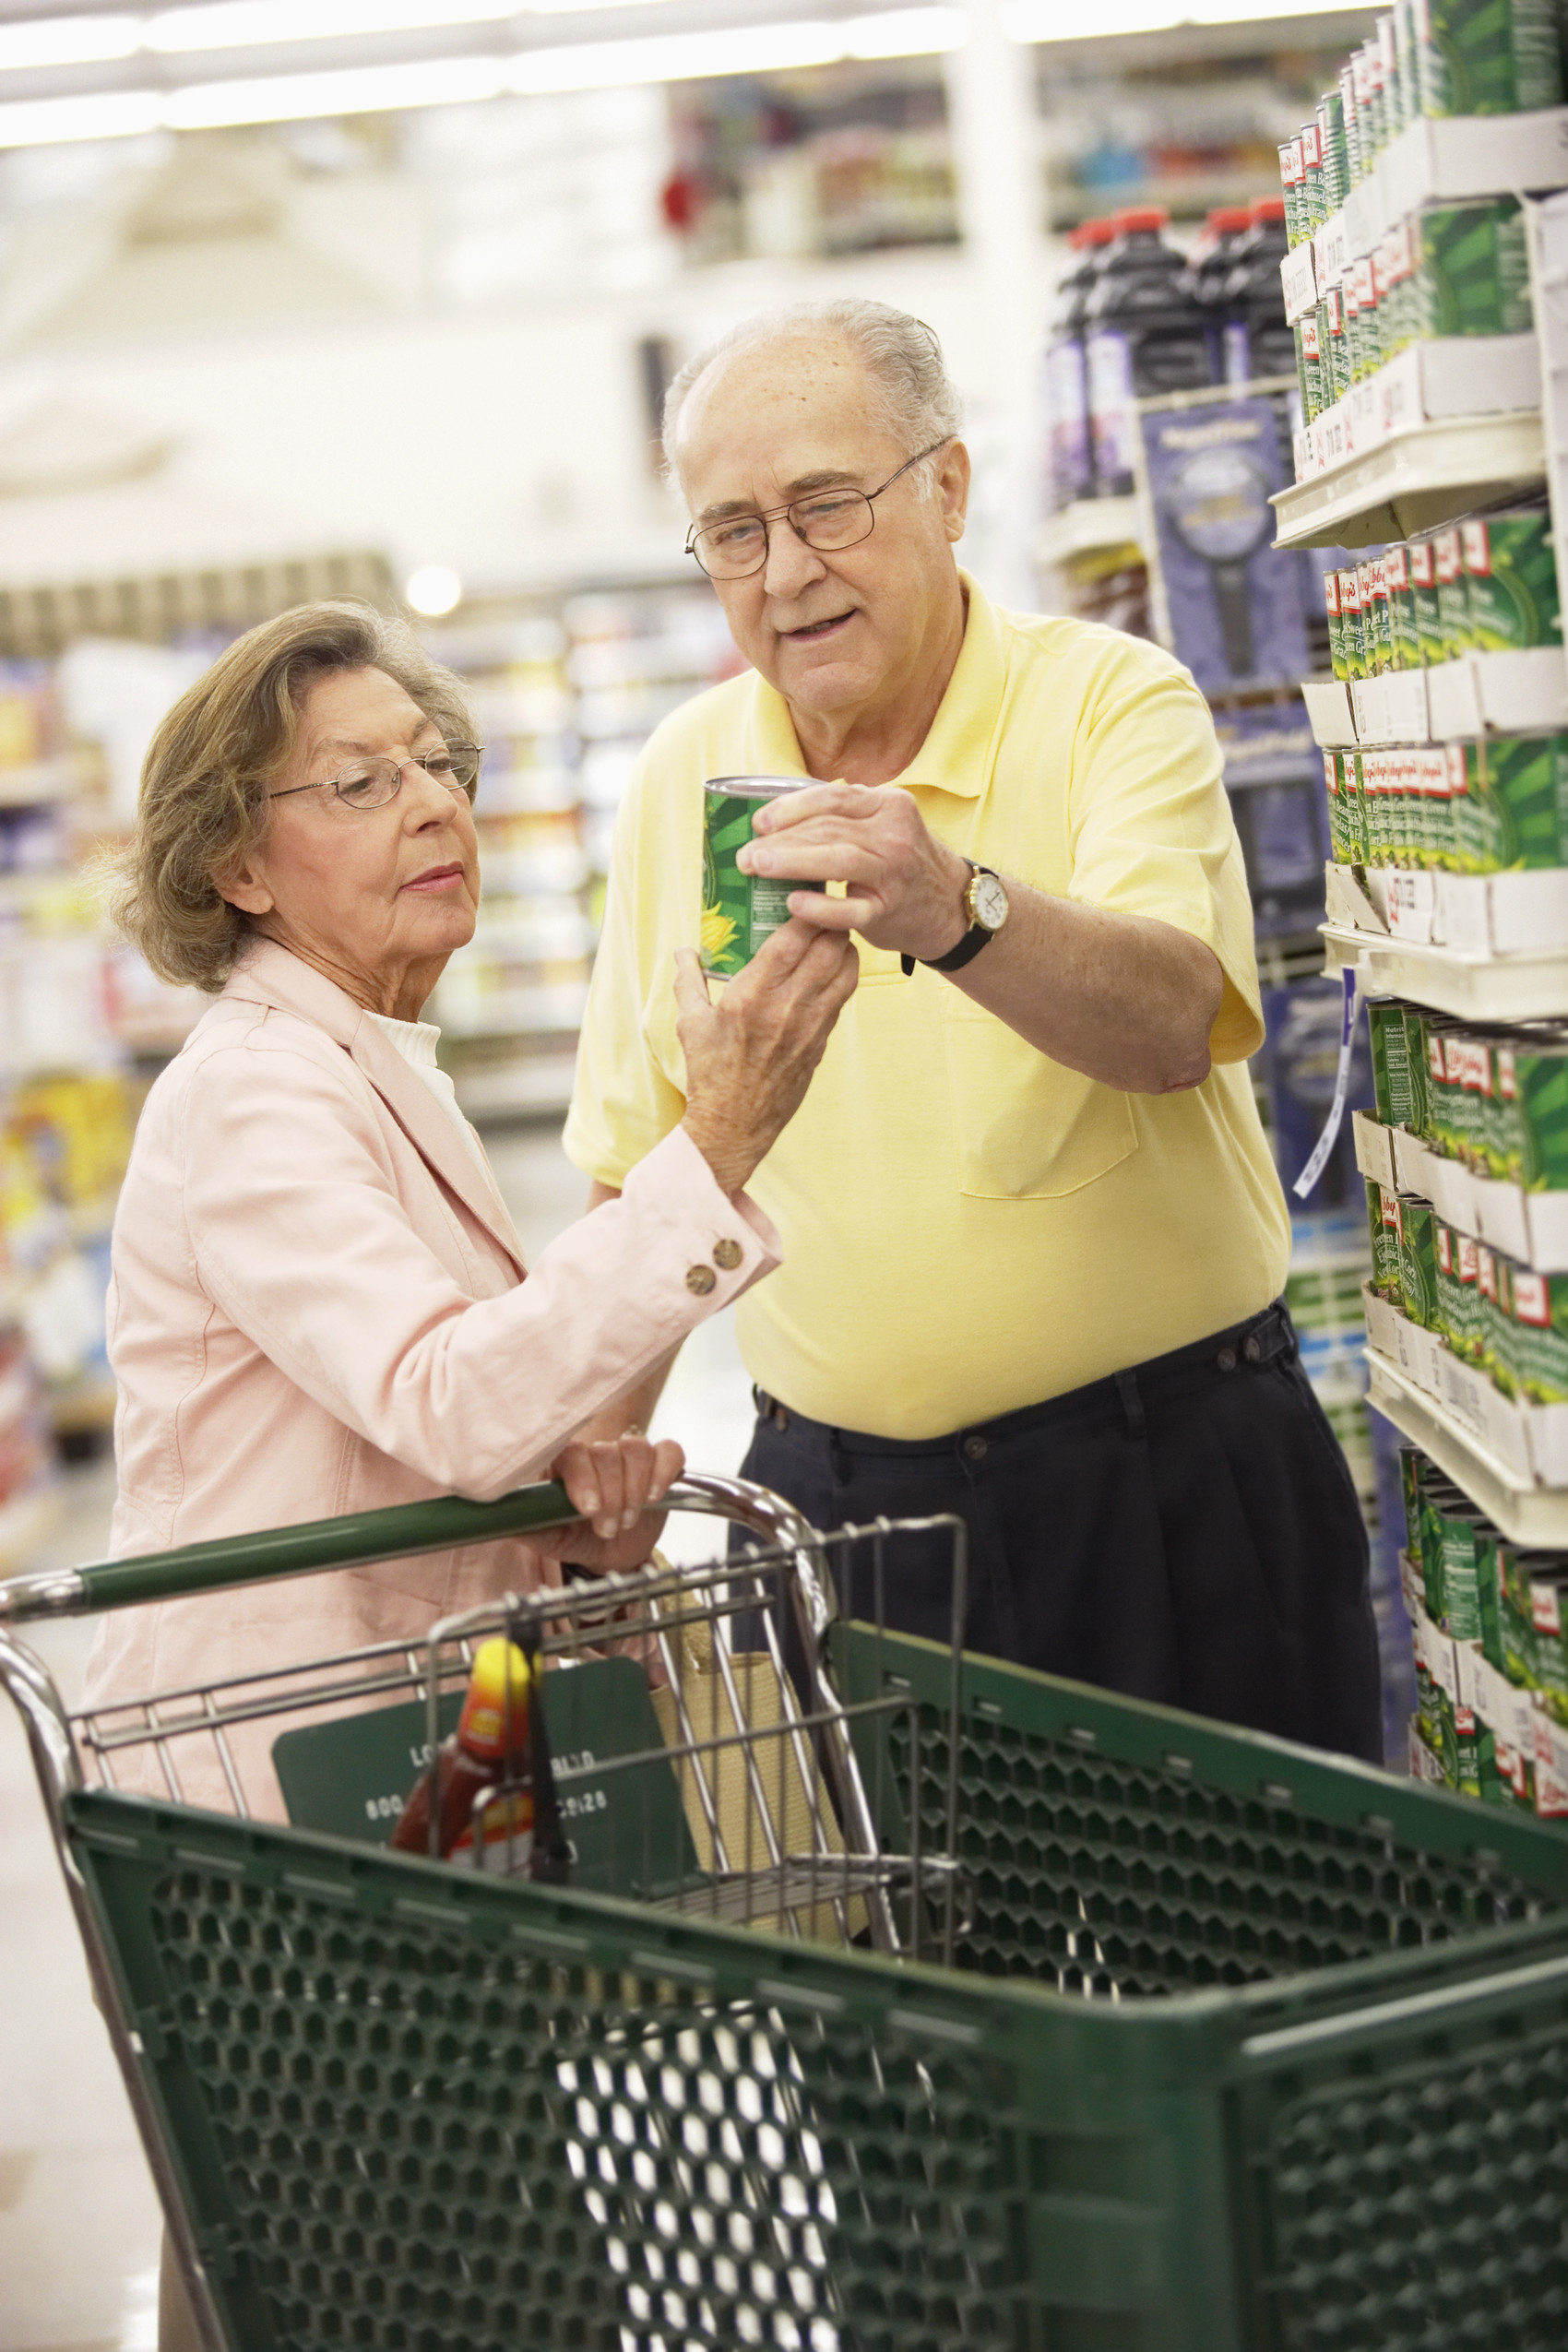 Couple Reading Canned Food Label --- Image by © PictureNet/Corbis